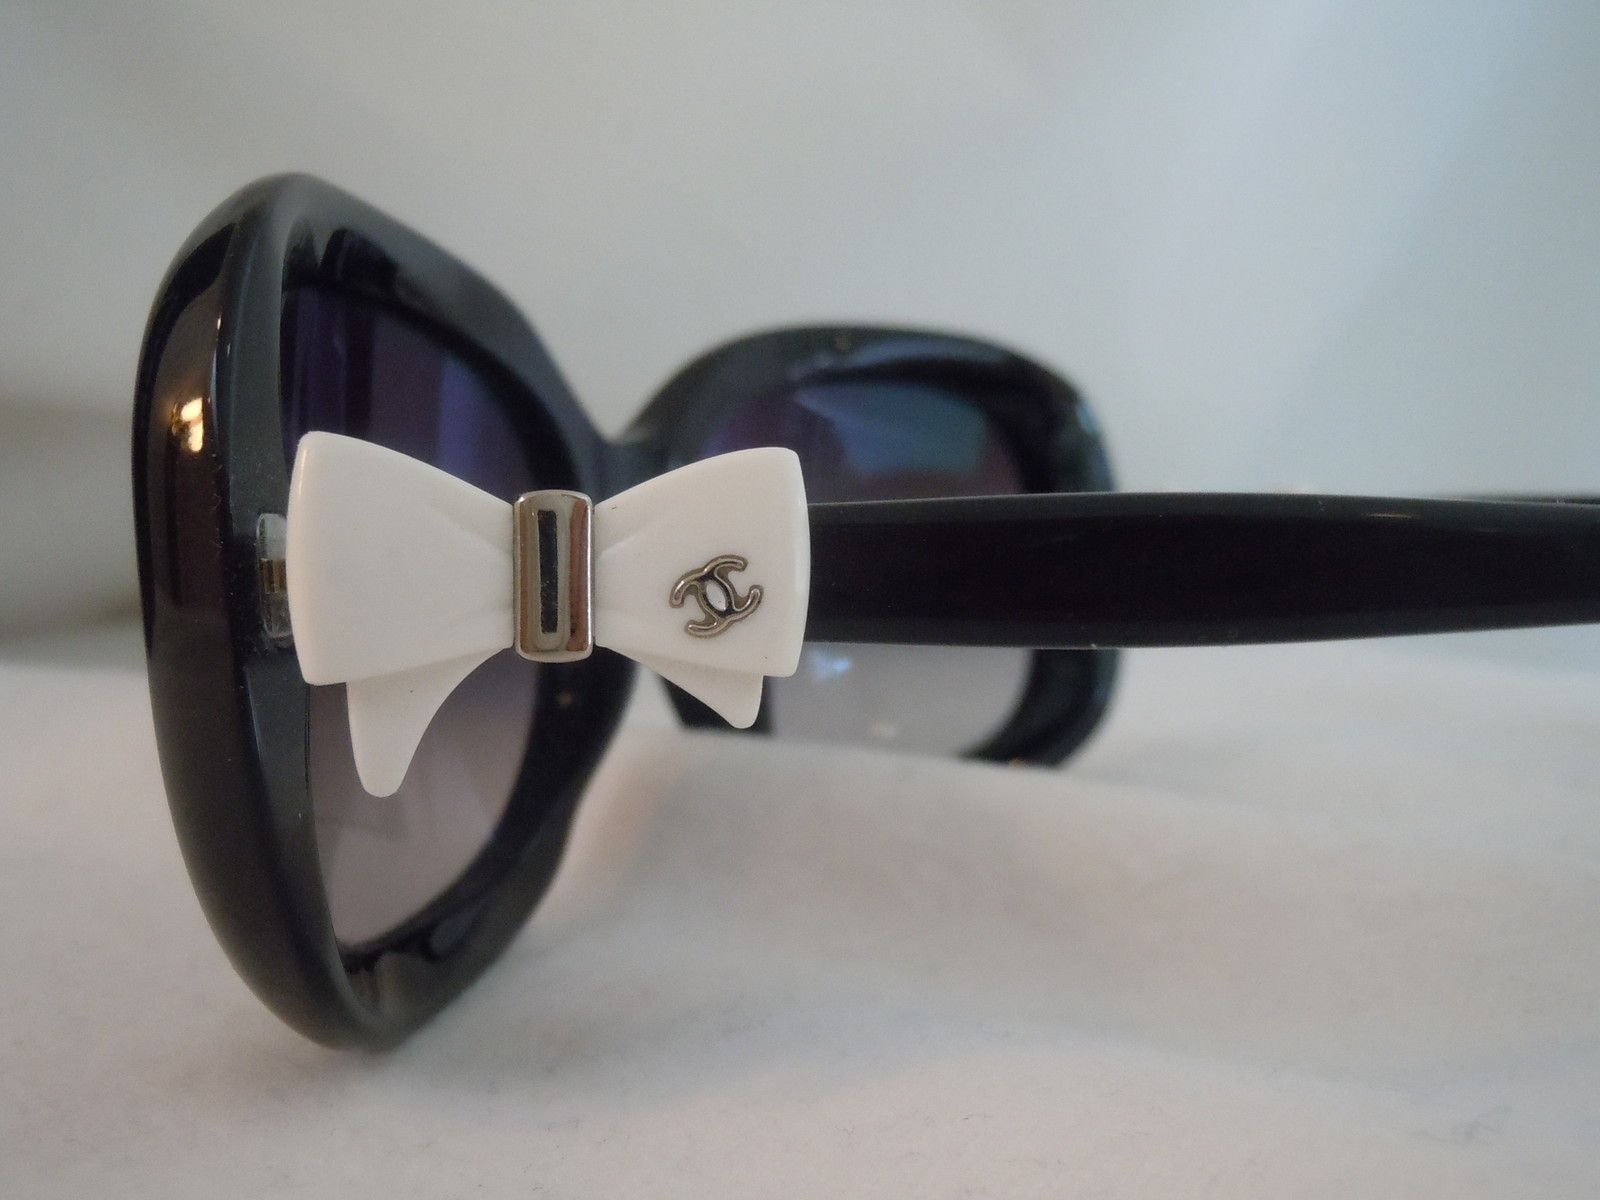 @Josef Dunne Pickett, I'm afraid I'm going to need these Chanel sunglasses.